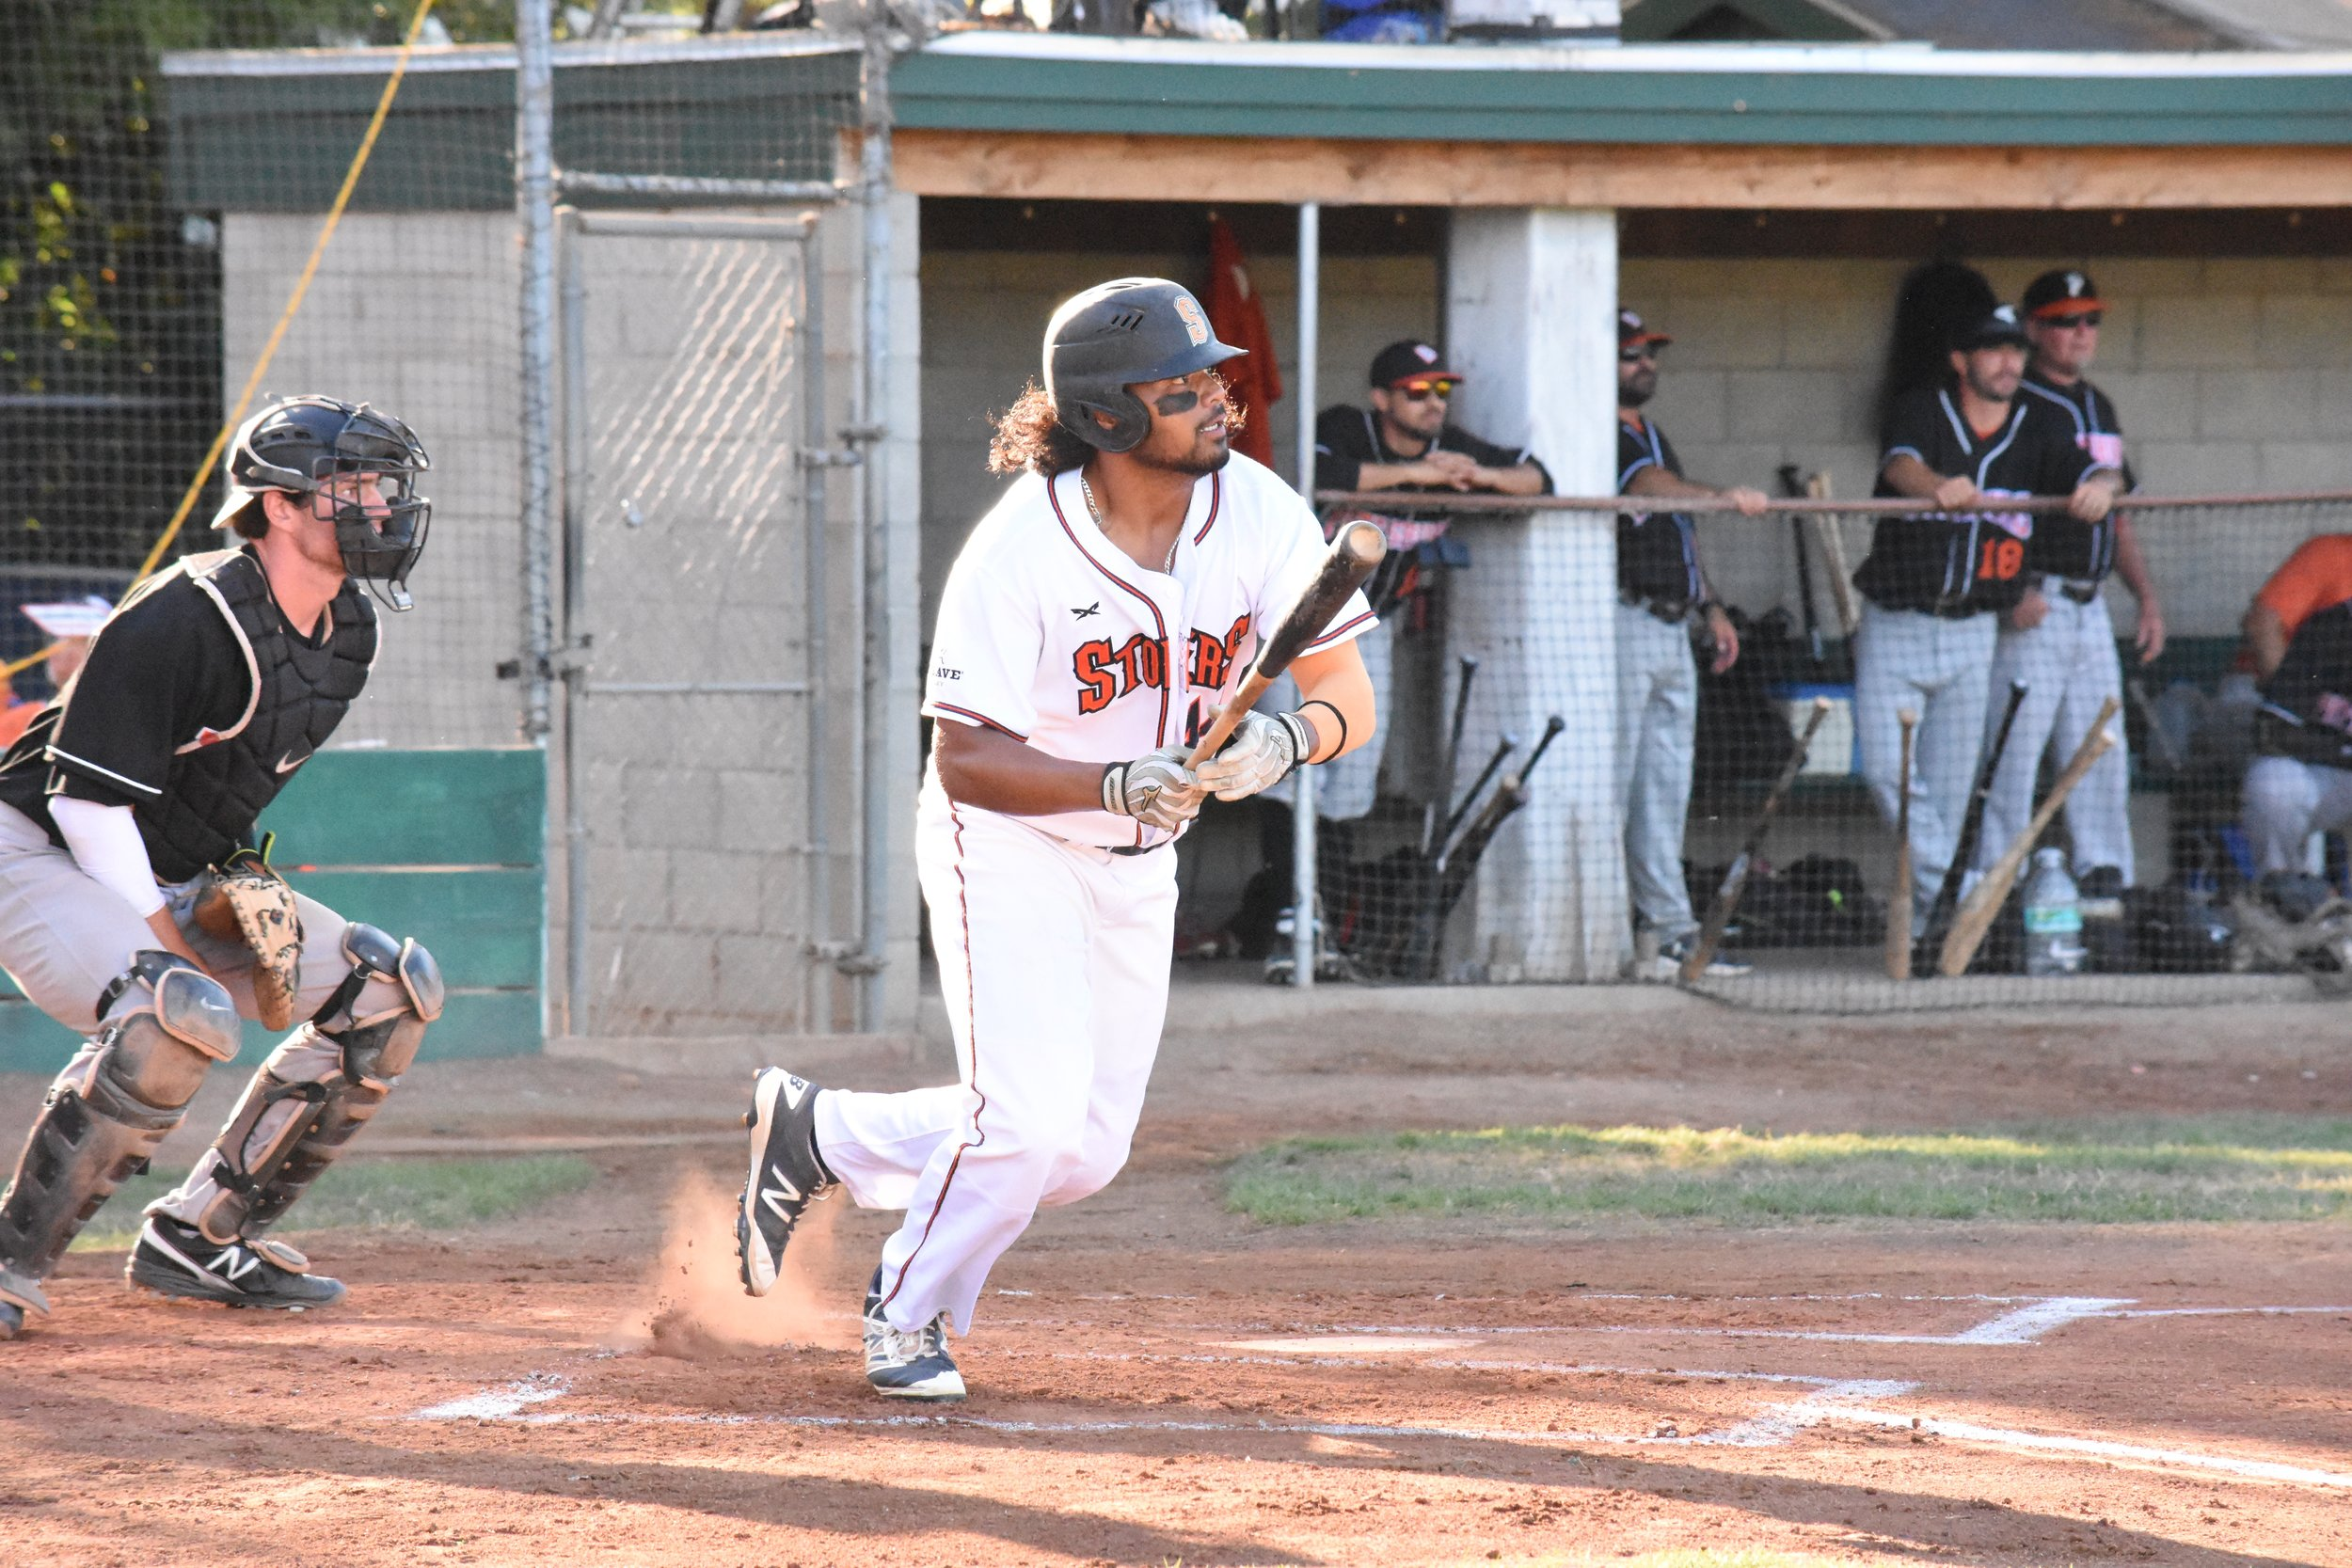 In Sunday's 7-1 win over the Pittsburg Diamonds at People's Home Equity Ballpark, Daniel Baptista hits a homer to give the Sonoma Stompers the lead. (James W. Toy III / Sonoma Stompers)